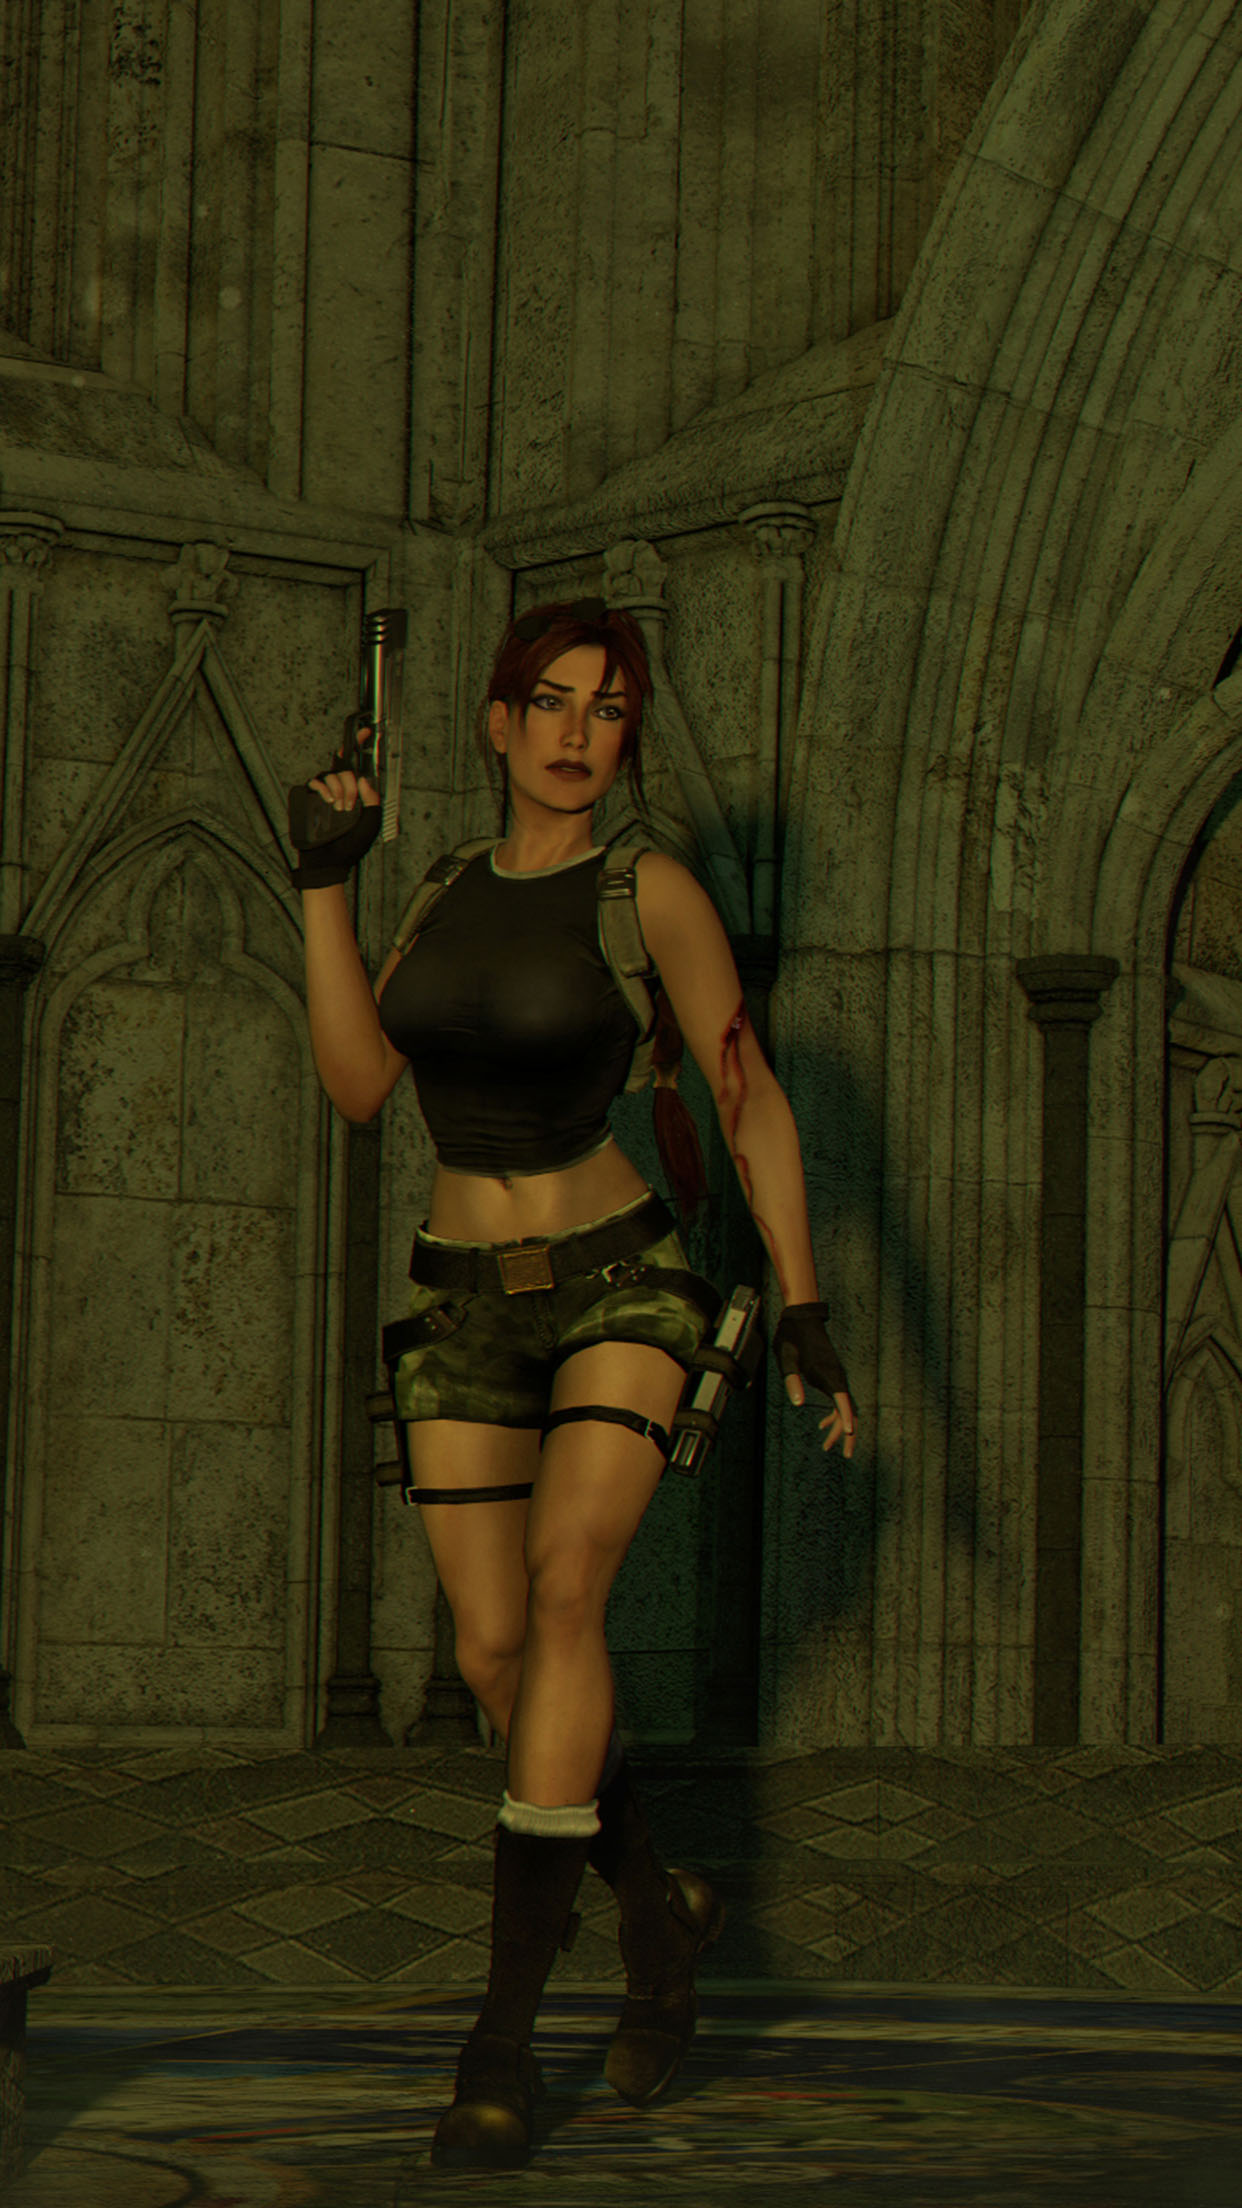 Tomb Raider Lara Croft Gun 3Wallpapers iPhone Parallax Lara Croft gun